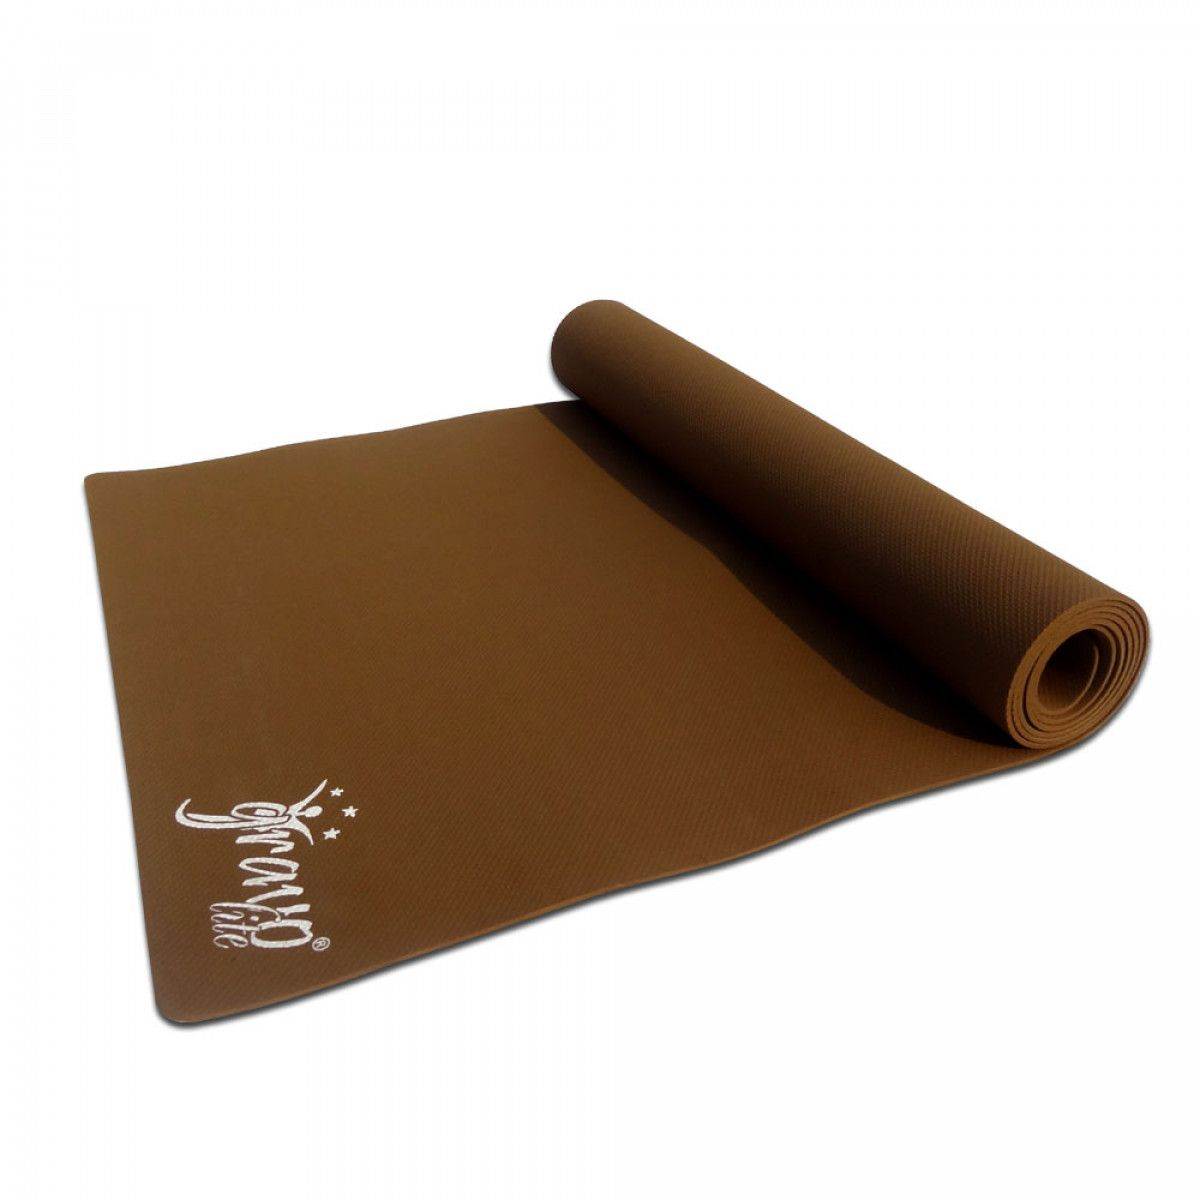 mat myquest lifestyles mats foam buy thick memory product yoga sq extra premium